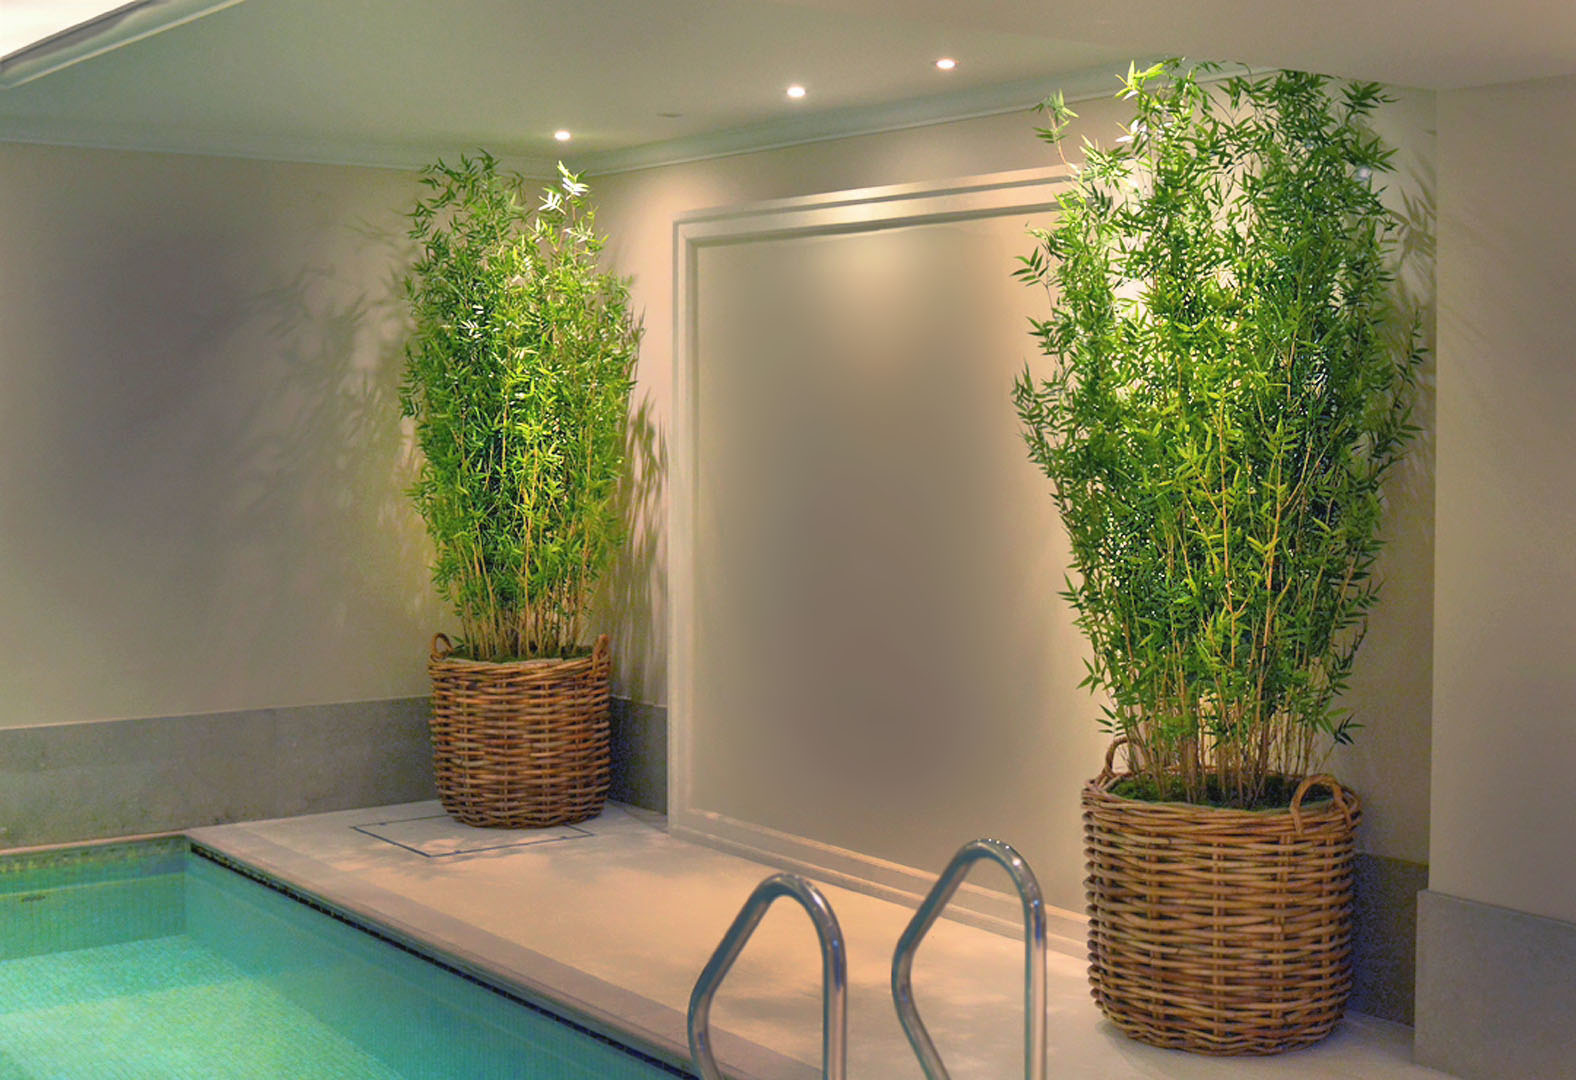 576 fake landscapes 220cm fine leaf pool bamboo in basket